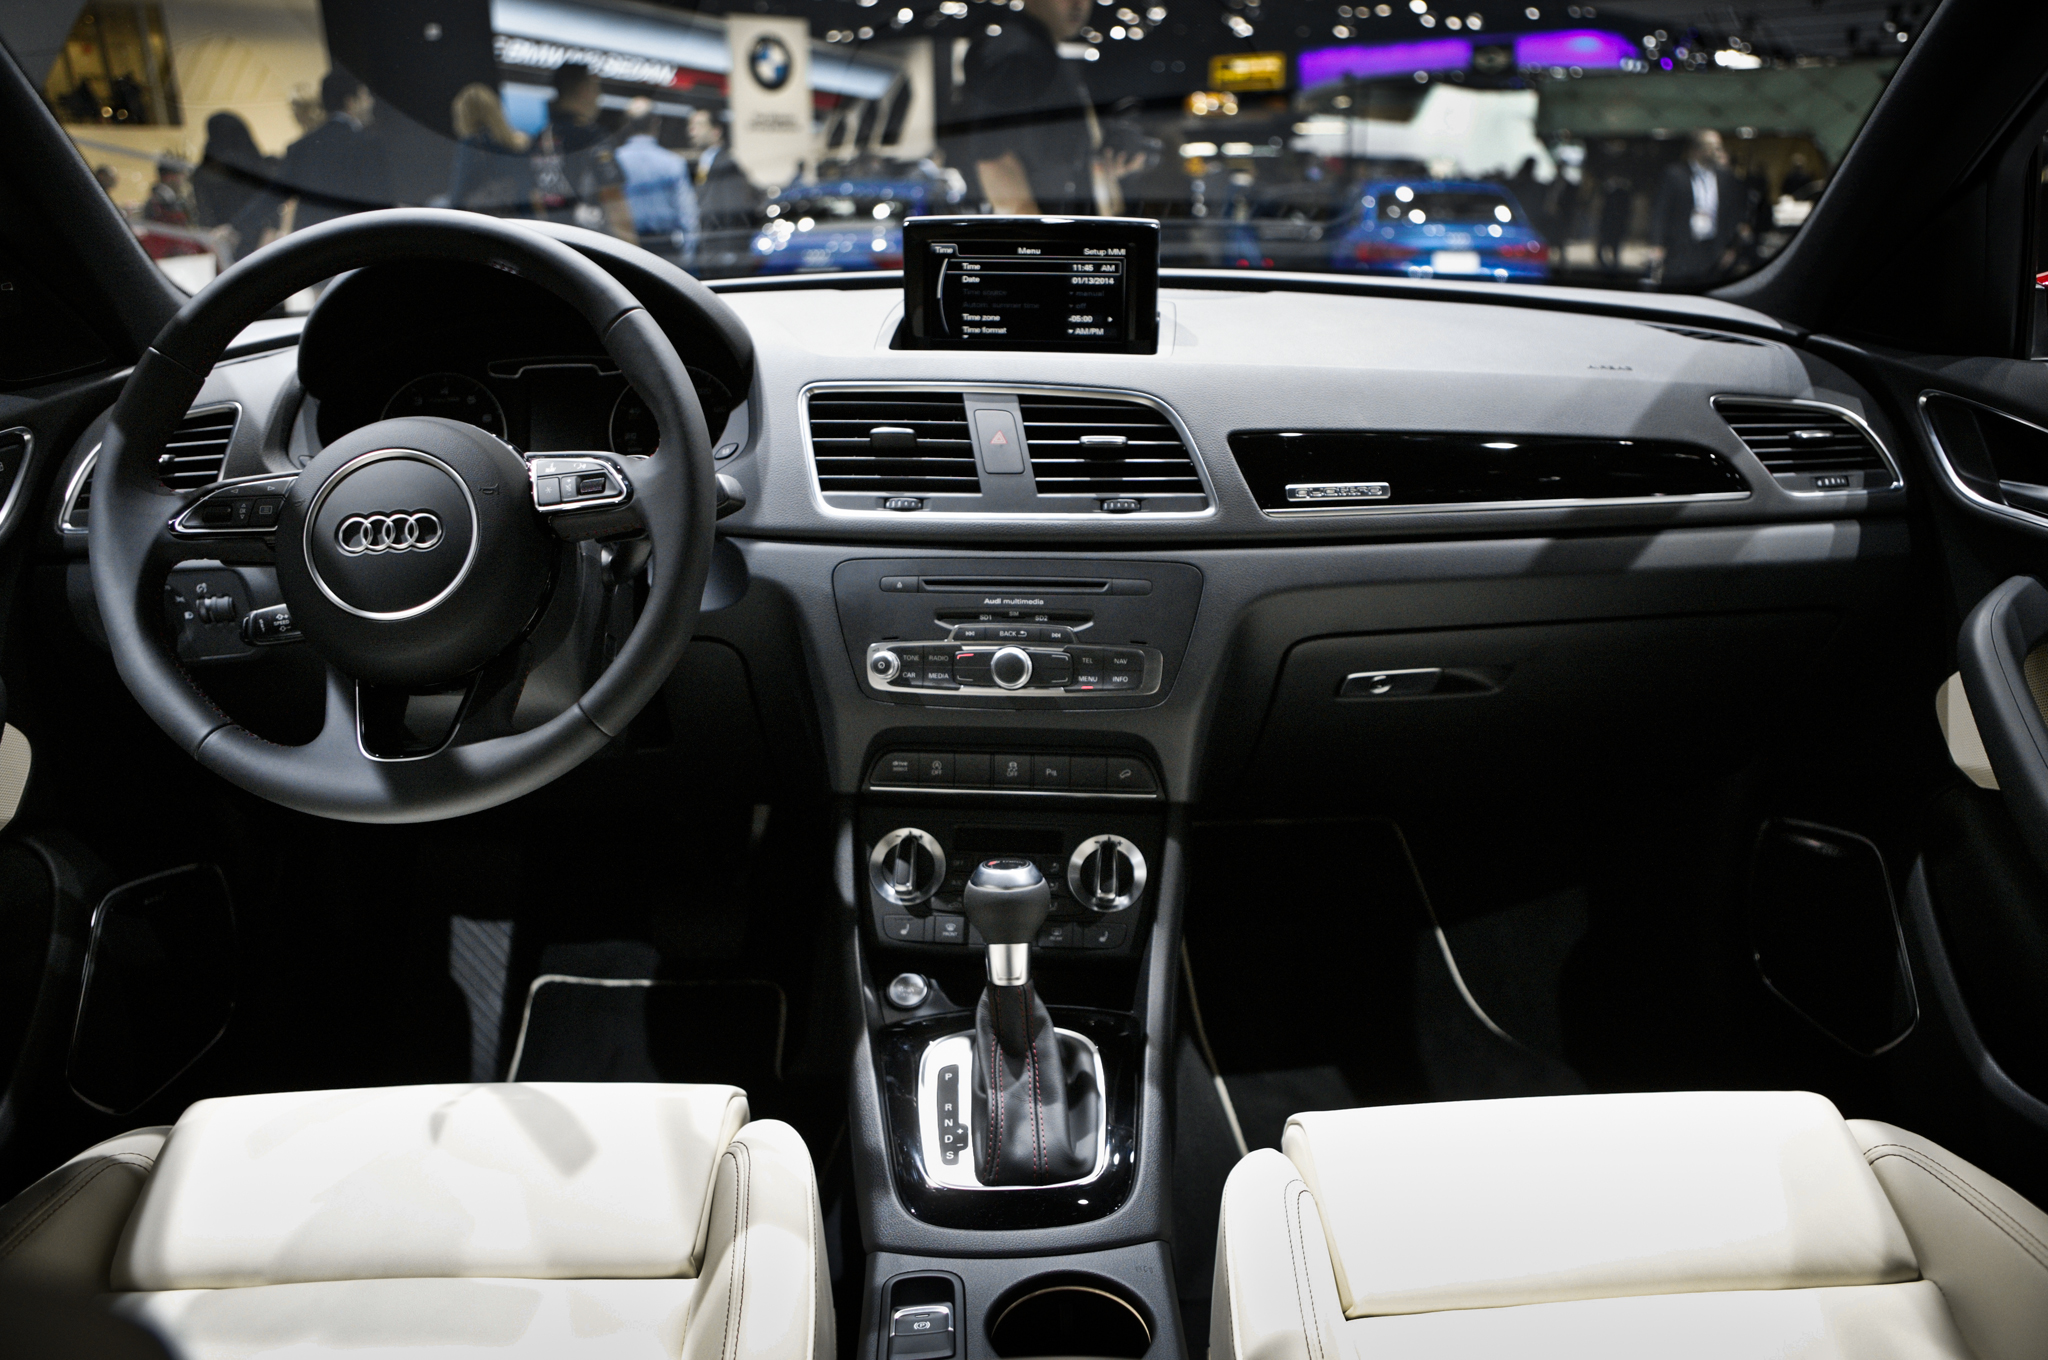 2015 Audi Q3 Dashboard Interior View